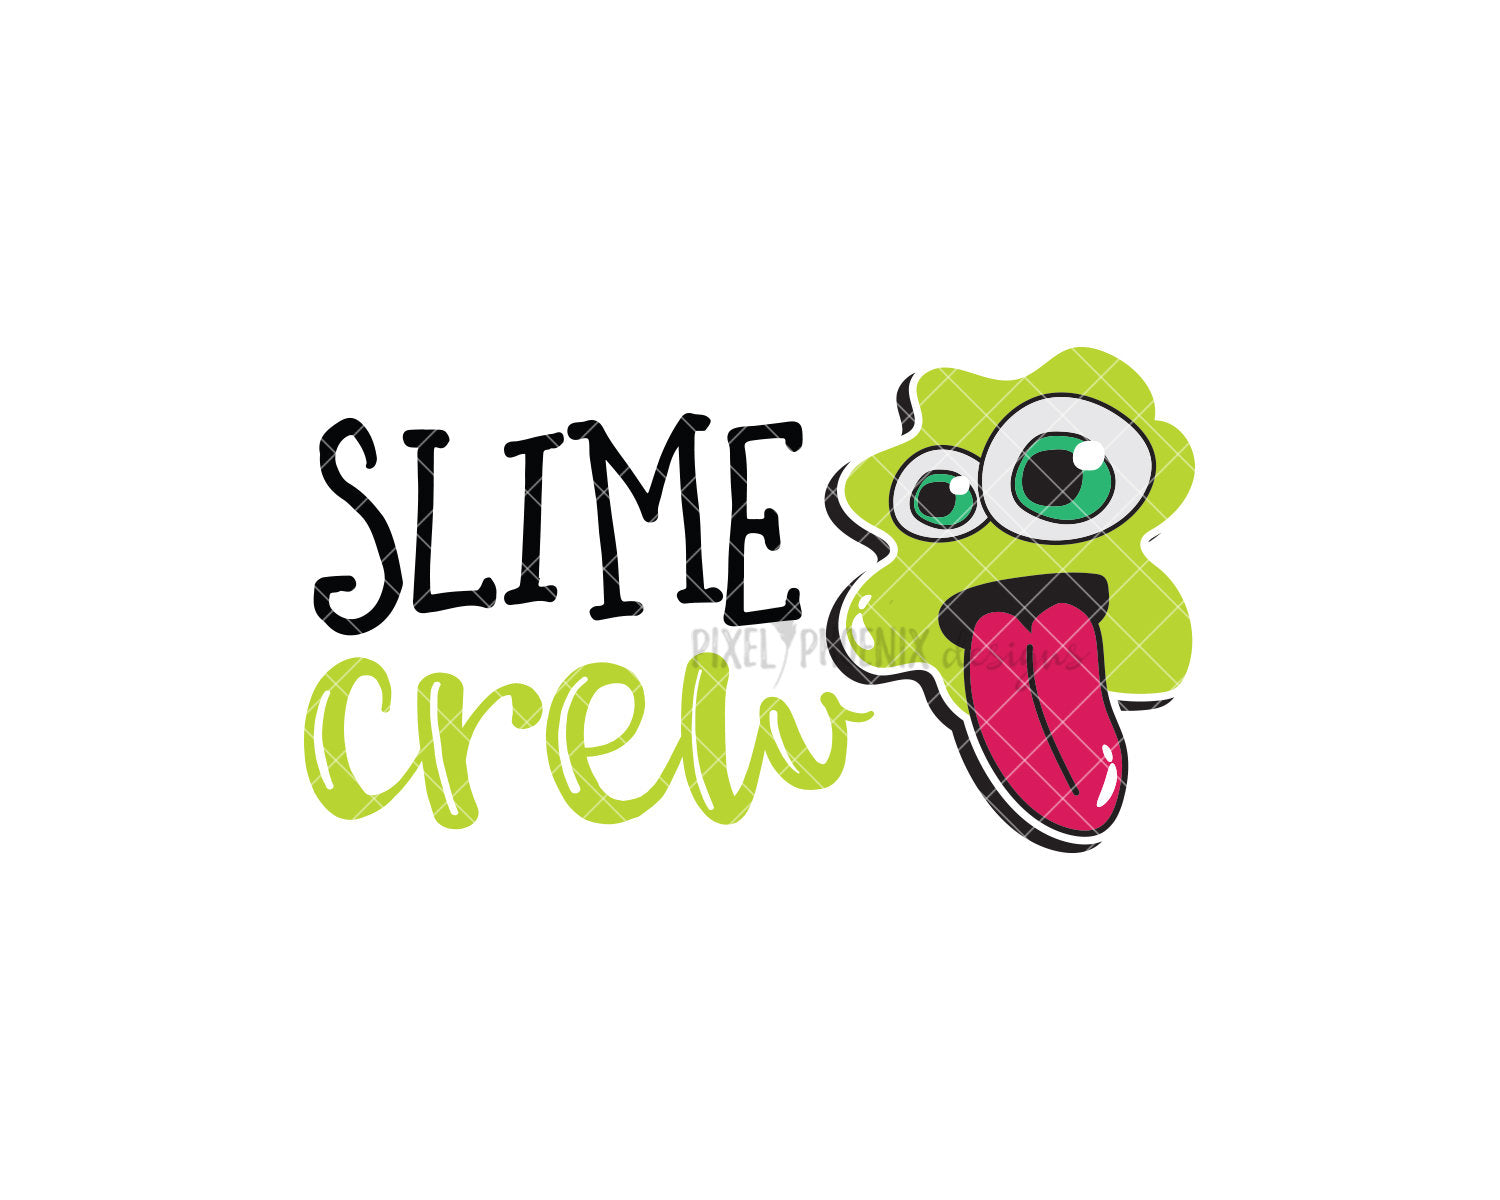 Slime Crew! Slime SVG cut file, perfect for any slime party! For slime lovers of all ages, boys and girls.